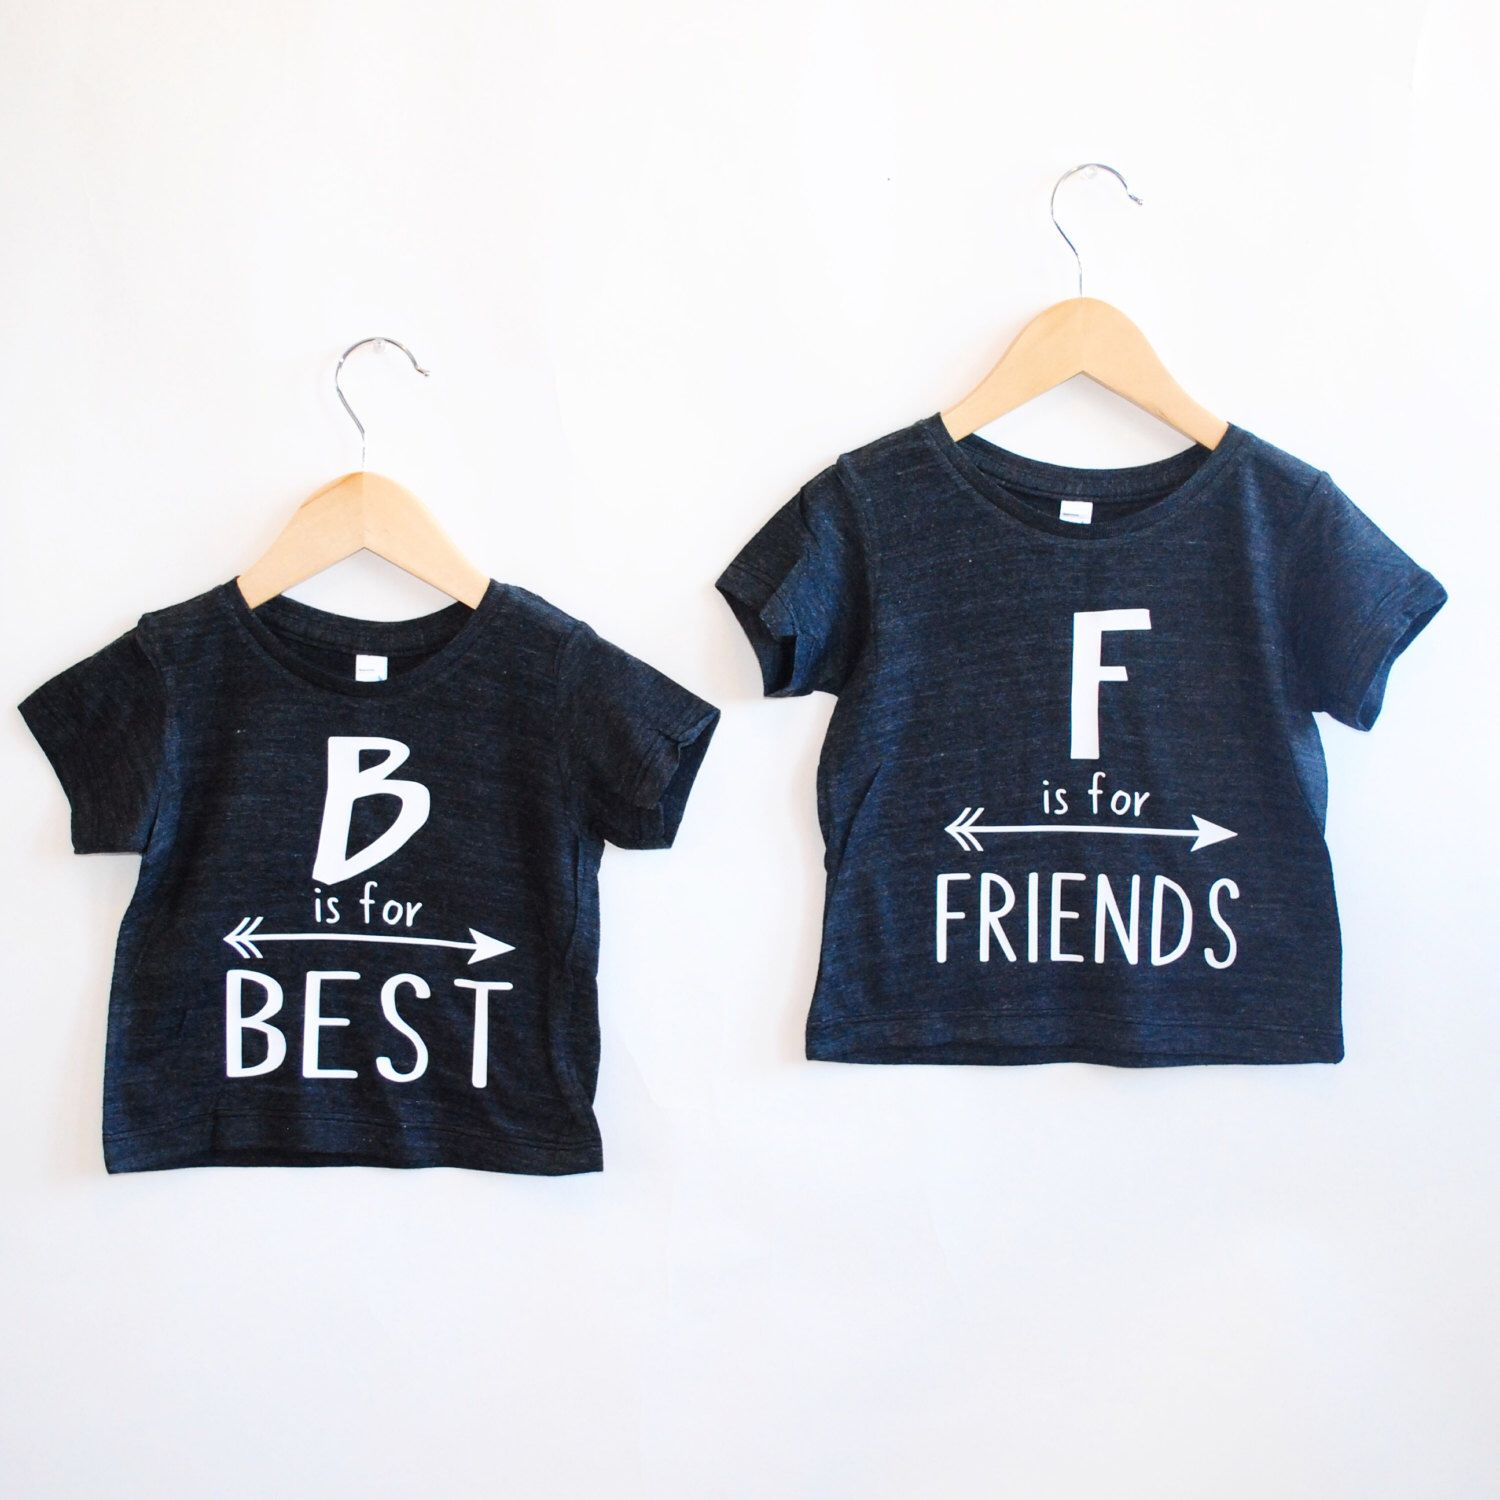 Best Friend Quotes For Shirts: Pin By MaryJo Williams On Little Tots